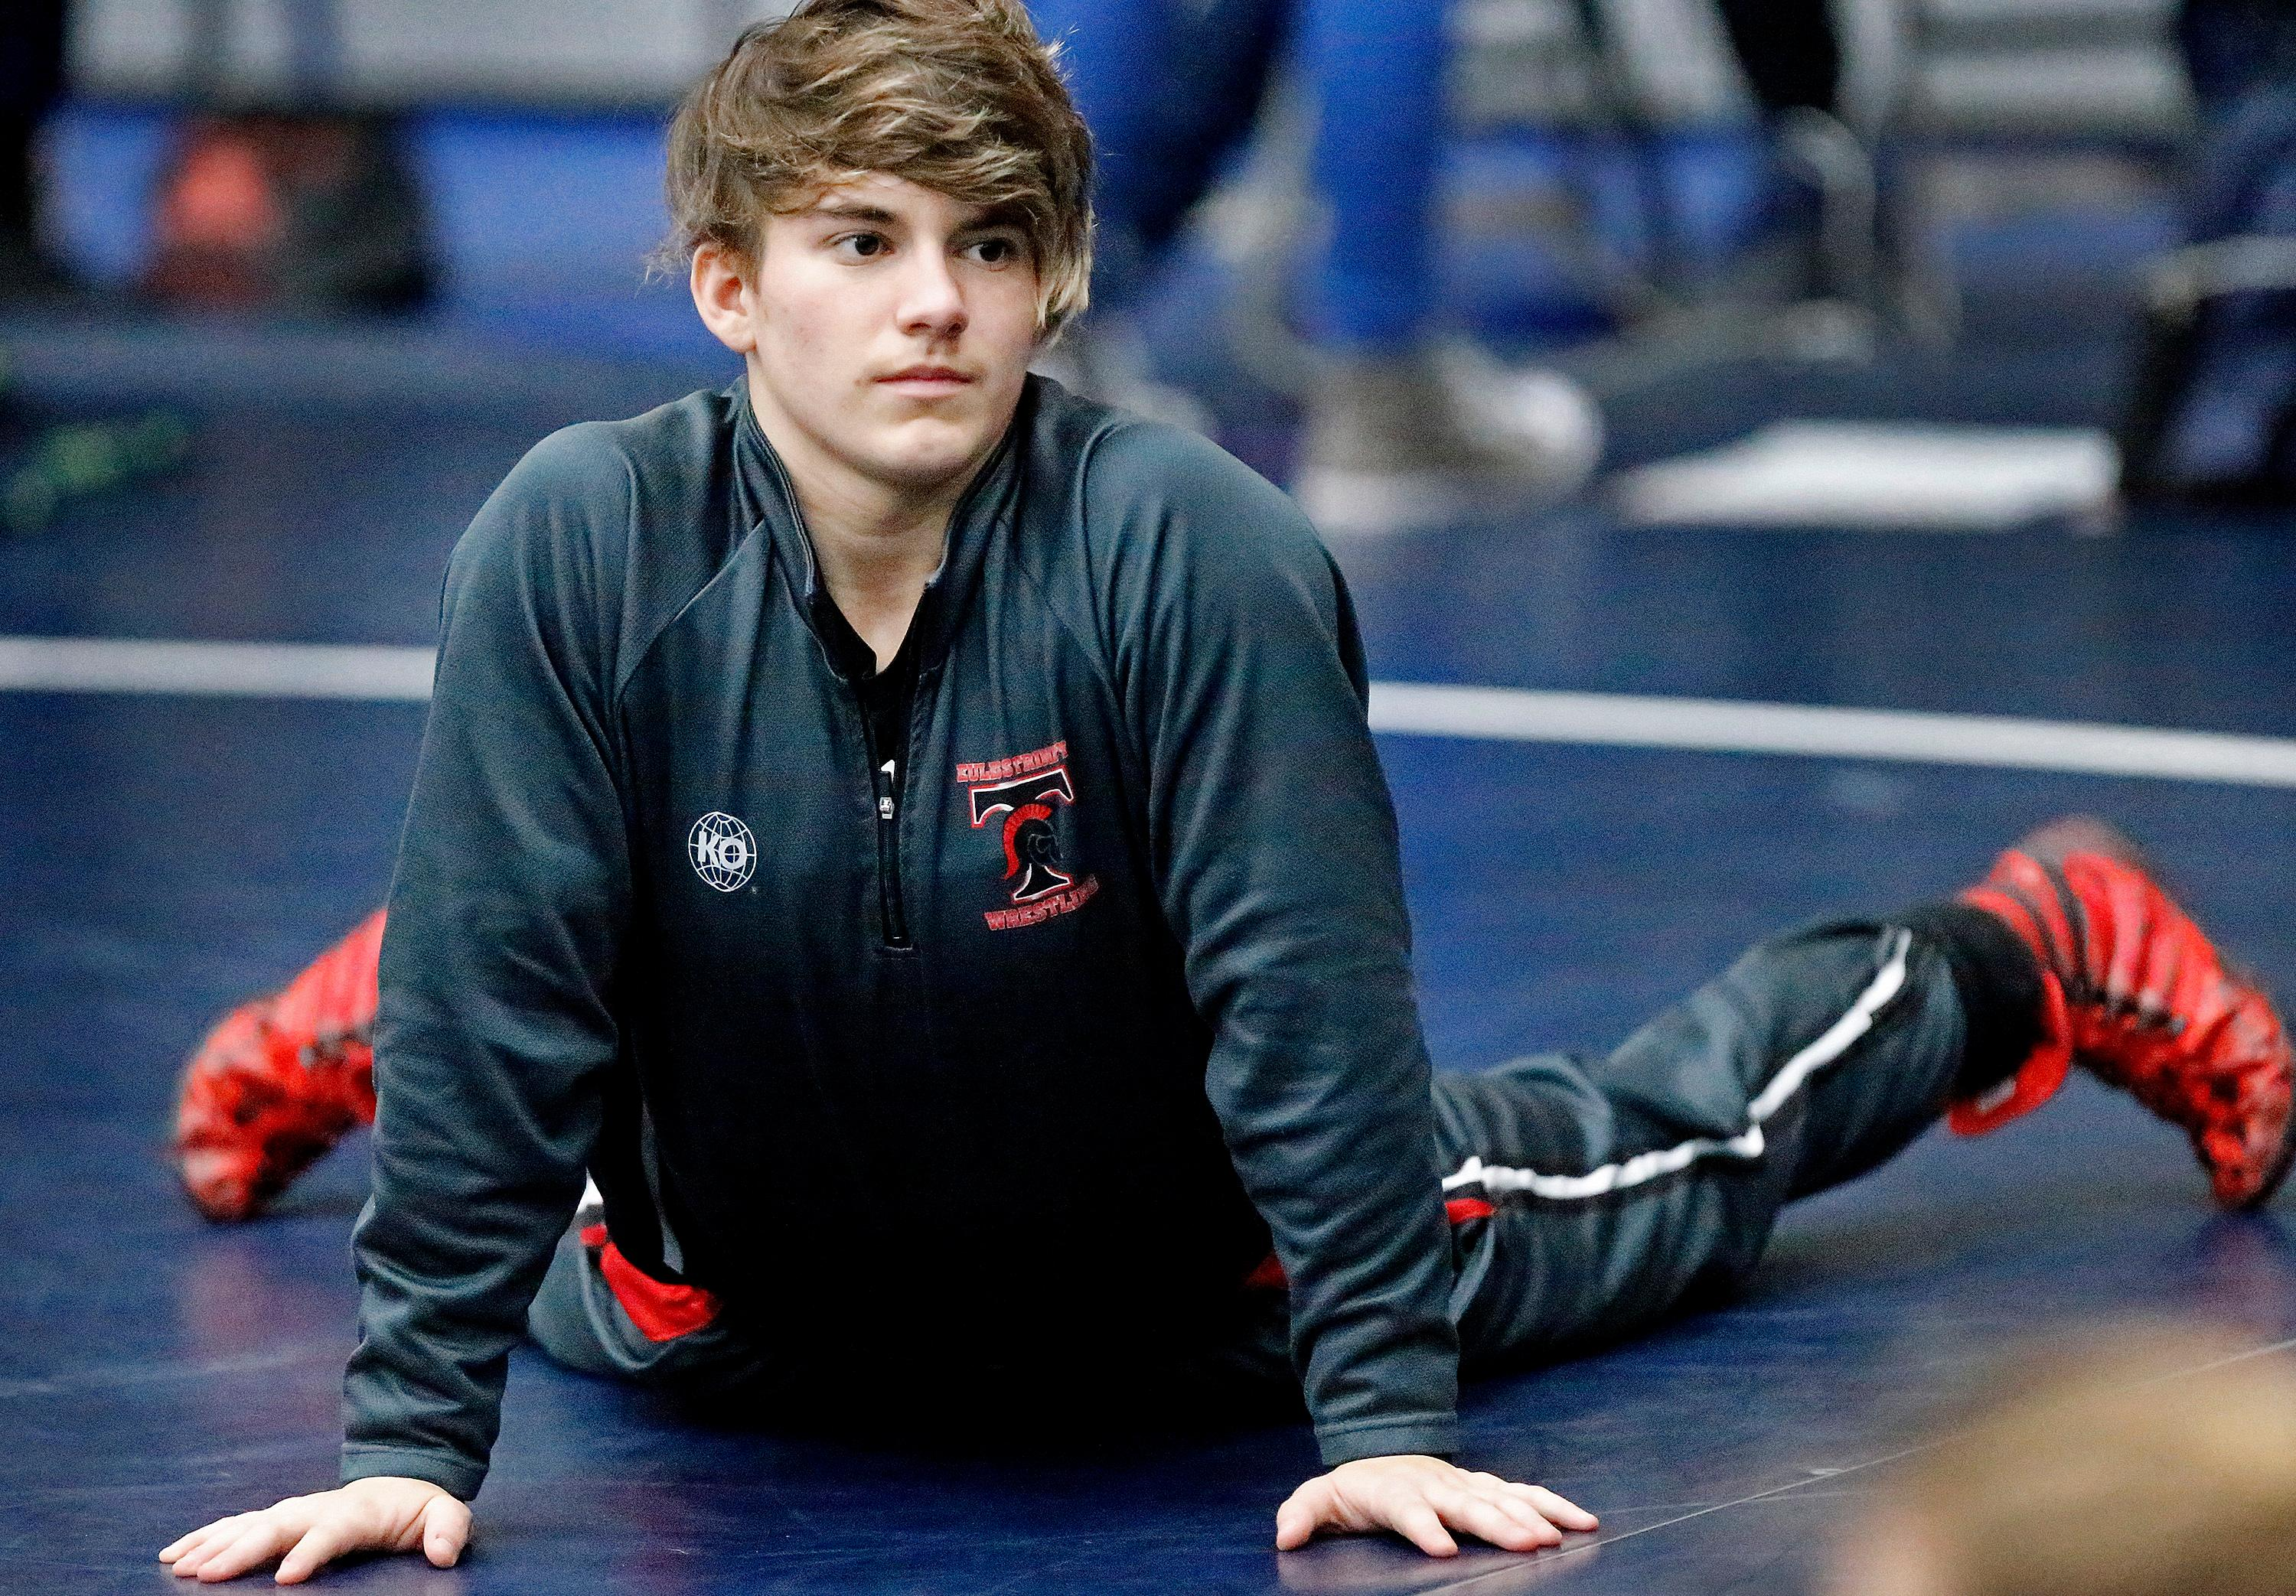 In this Saturday, Feb. 17, 2018 photo, Trinity High School wrestler Mack Beggs warms up before her match at the 6A Region II wrestling meet held at Allen High School in Allen, Texas . Beggs, a senior from Euless Trinity High School near Dallas is transgender and in the process of transitioning from female to male. (Stewart F. House/The Dallas Morning News via AP)